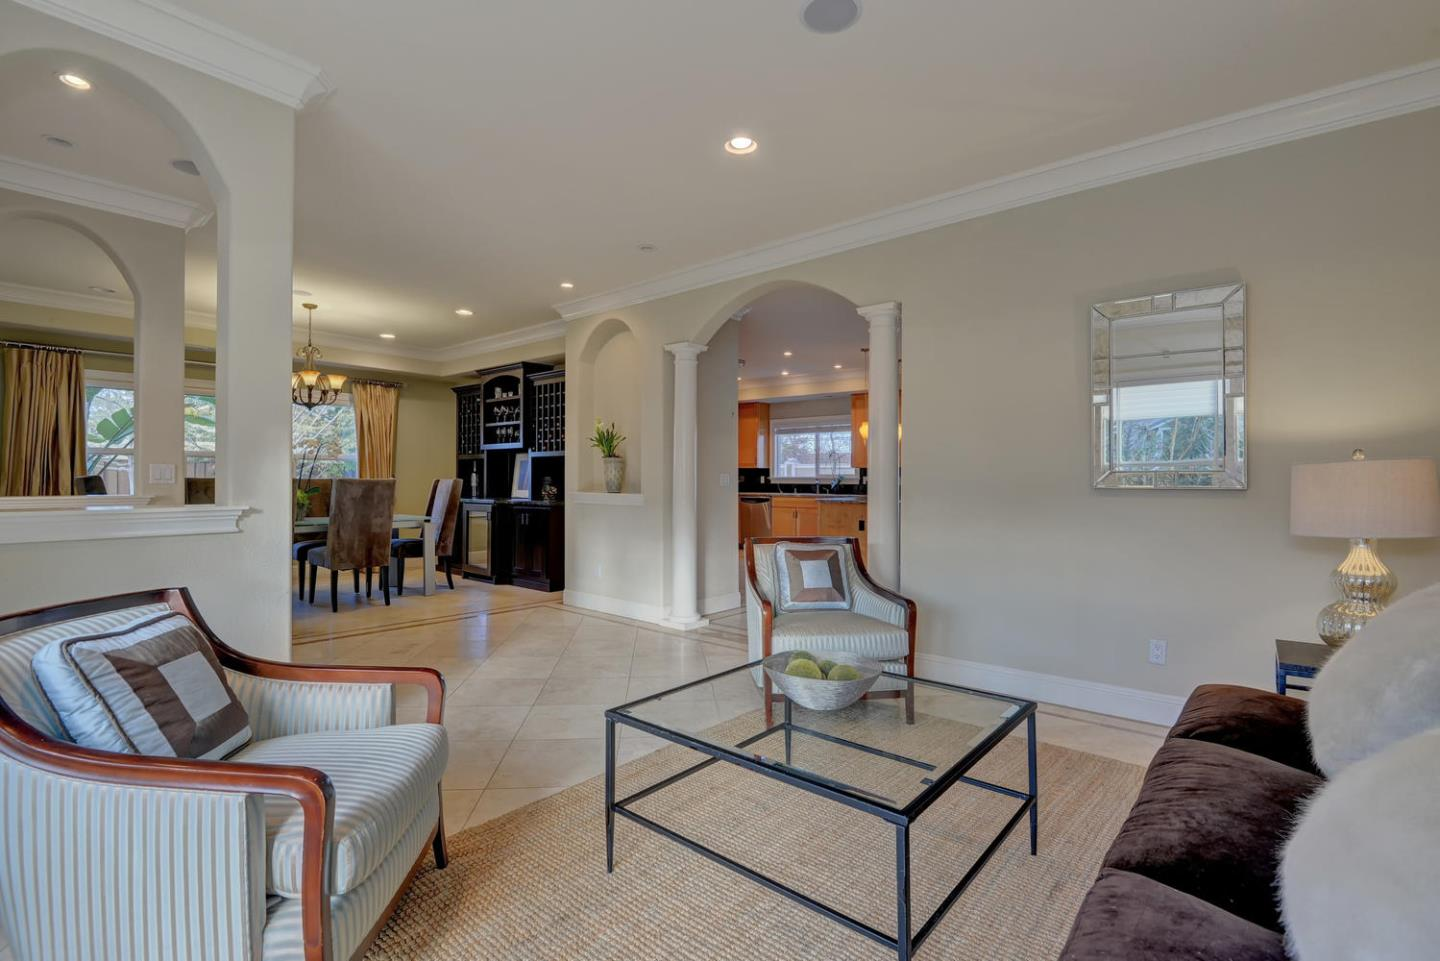 Additional photo for property listing at 18225 Dorcich Ct  SARATOGA, CALIFORNIA 95070